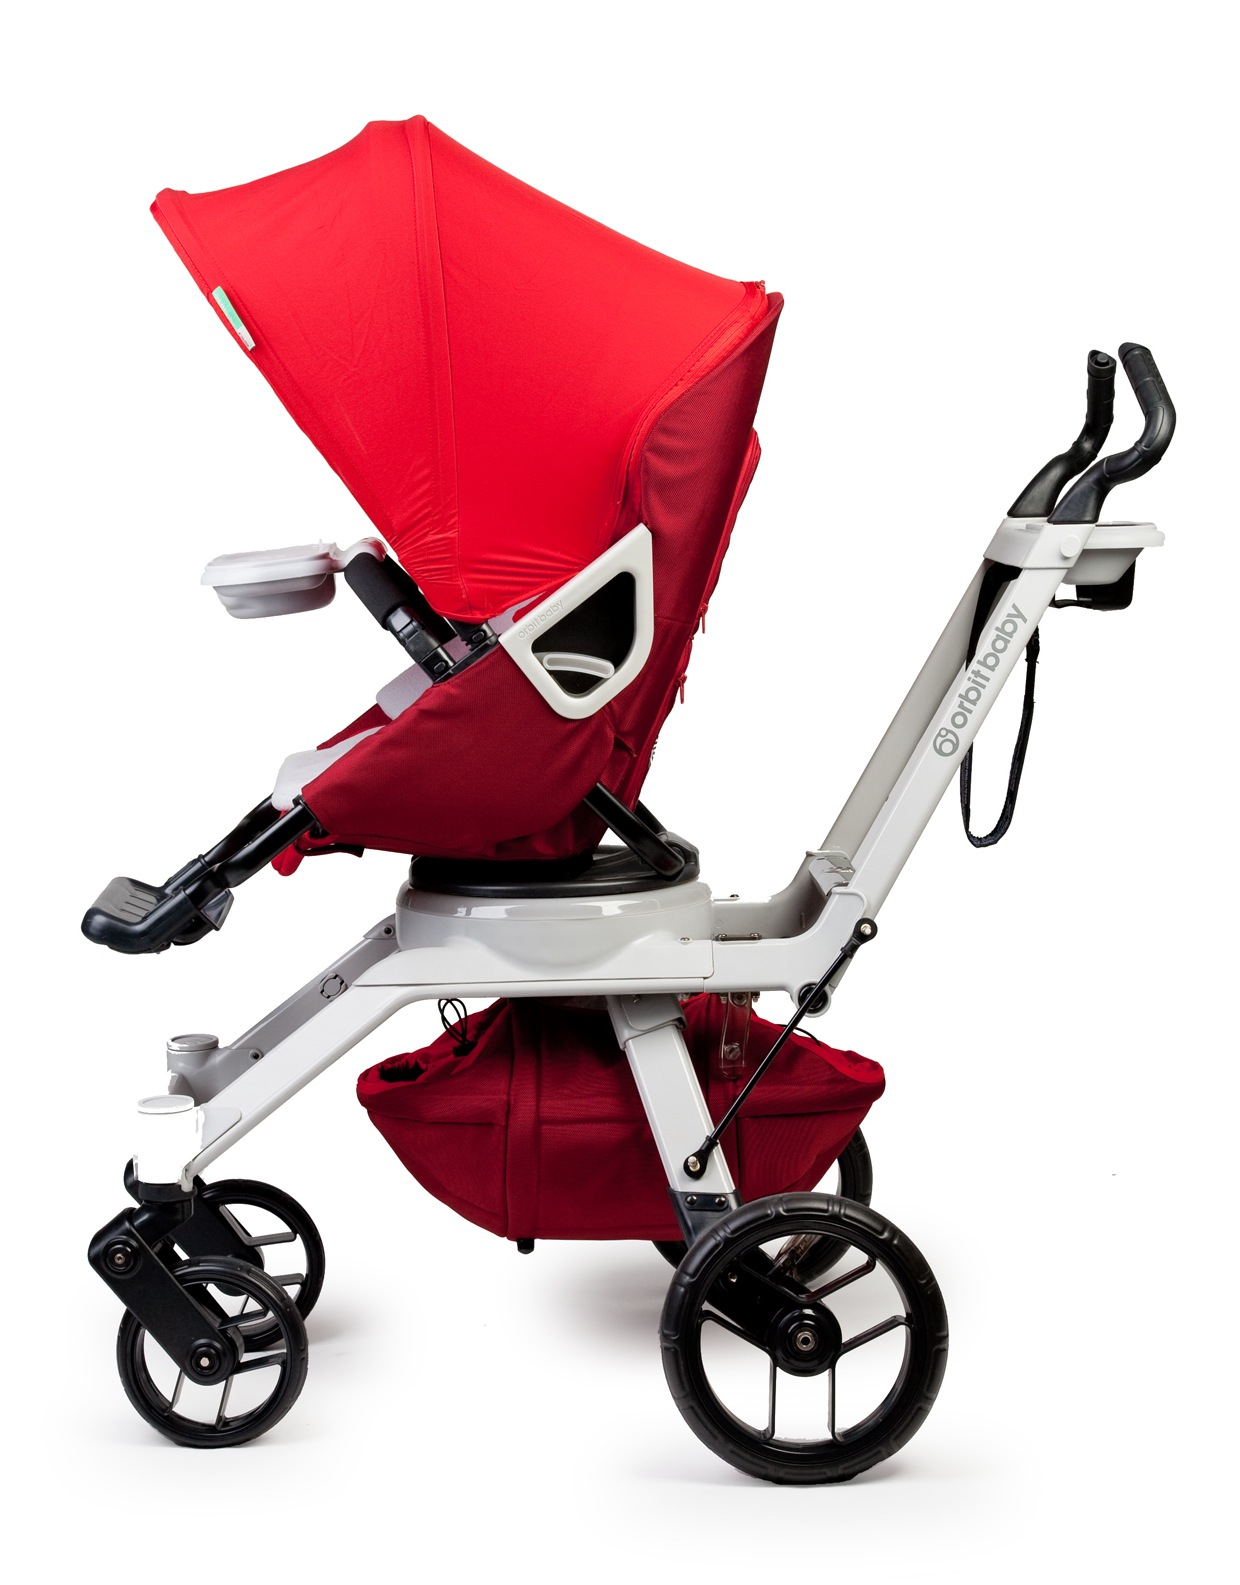 Orbit 2010: Demo of New G2 Stroller(VIDEO) : Growing Your Baby